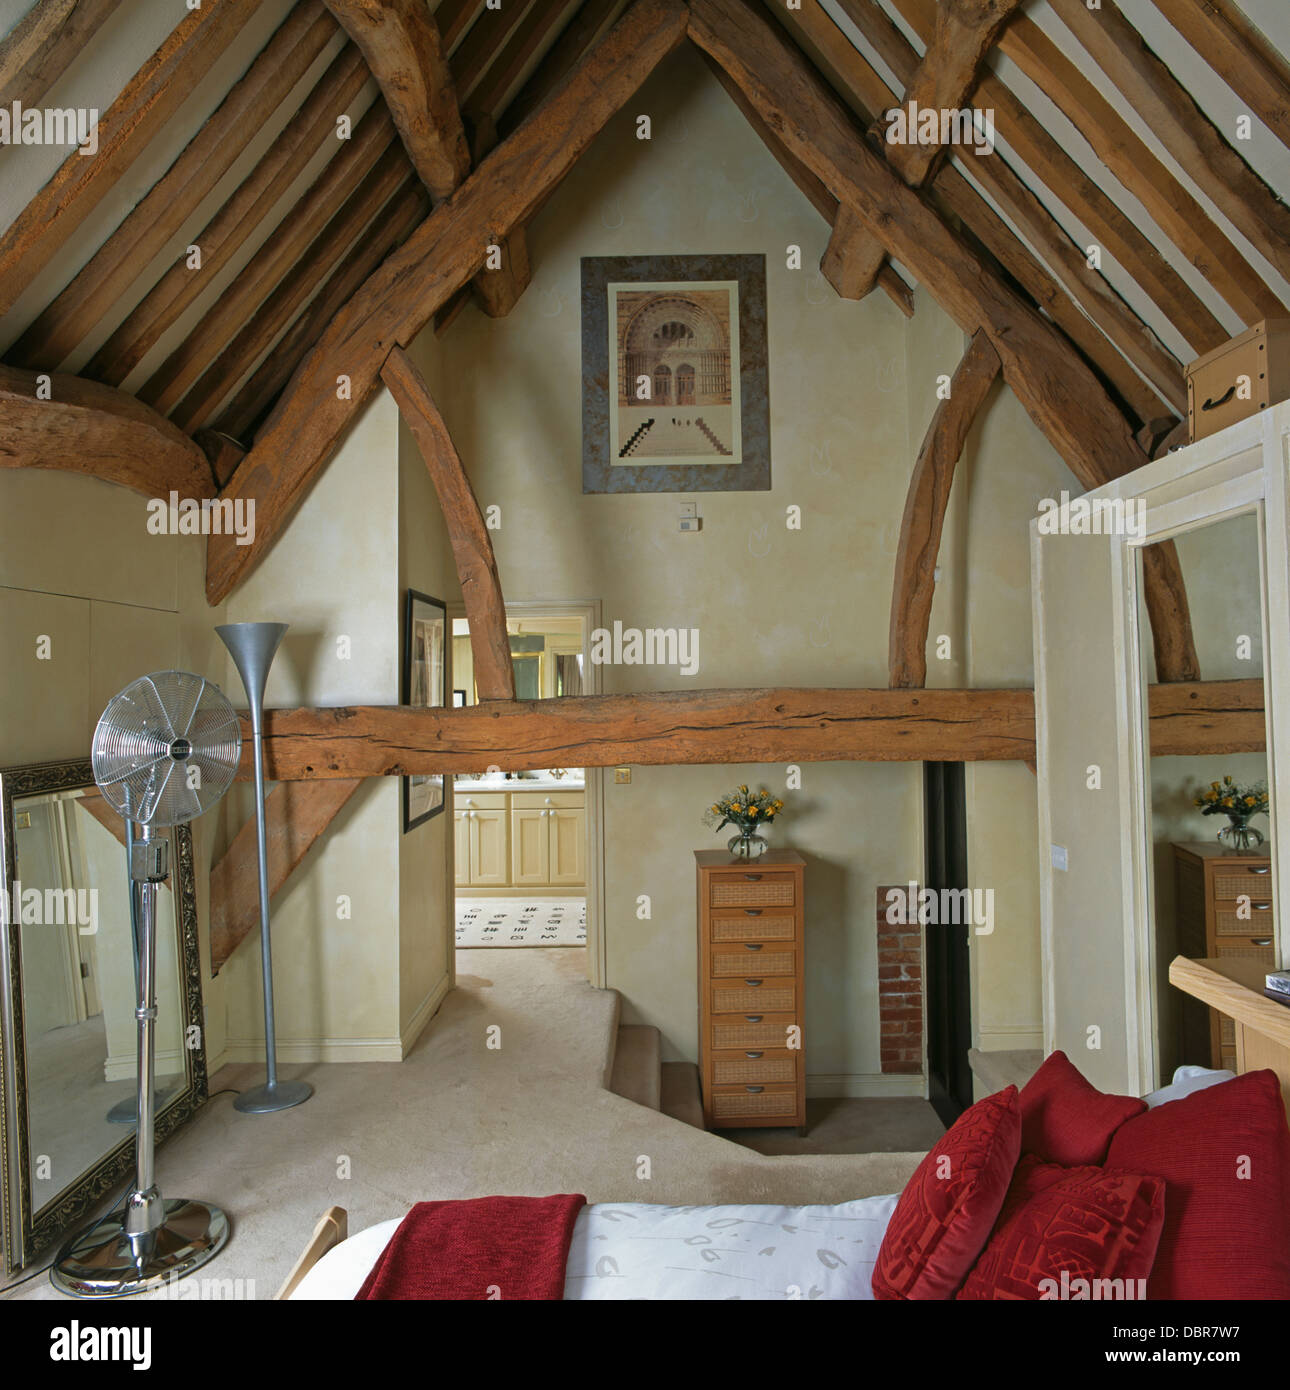 Rustic wooden beams on apex ceiling in barn conversion for Barn conversion bathroom ideas